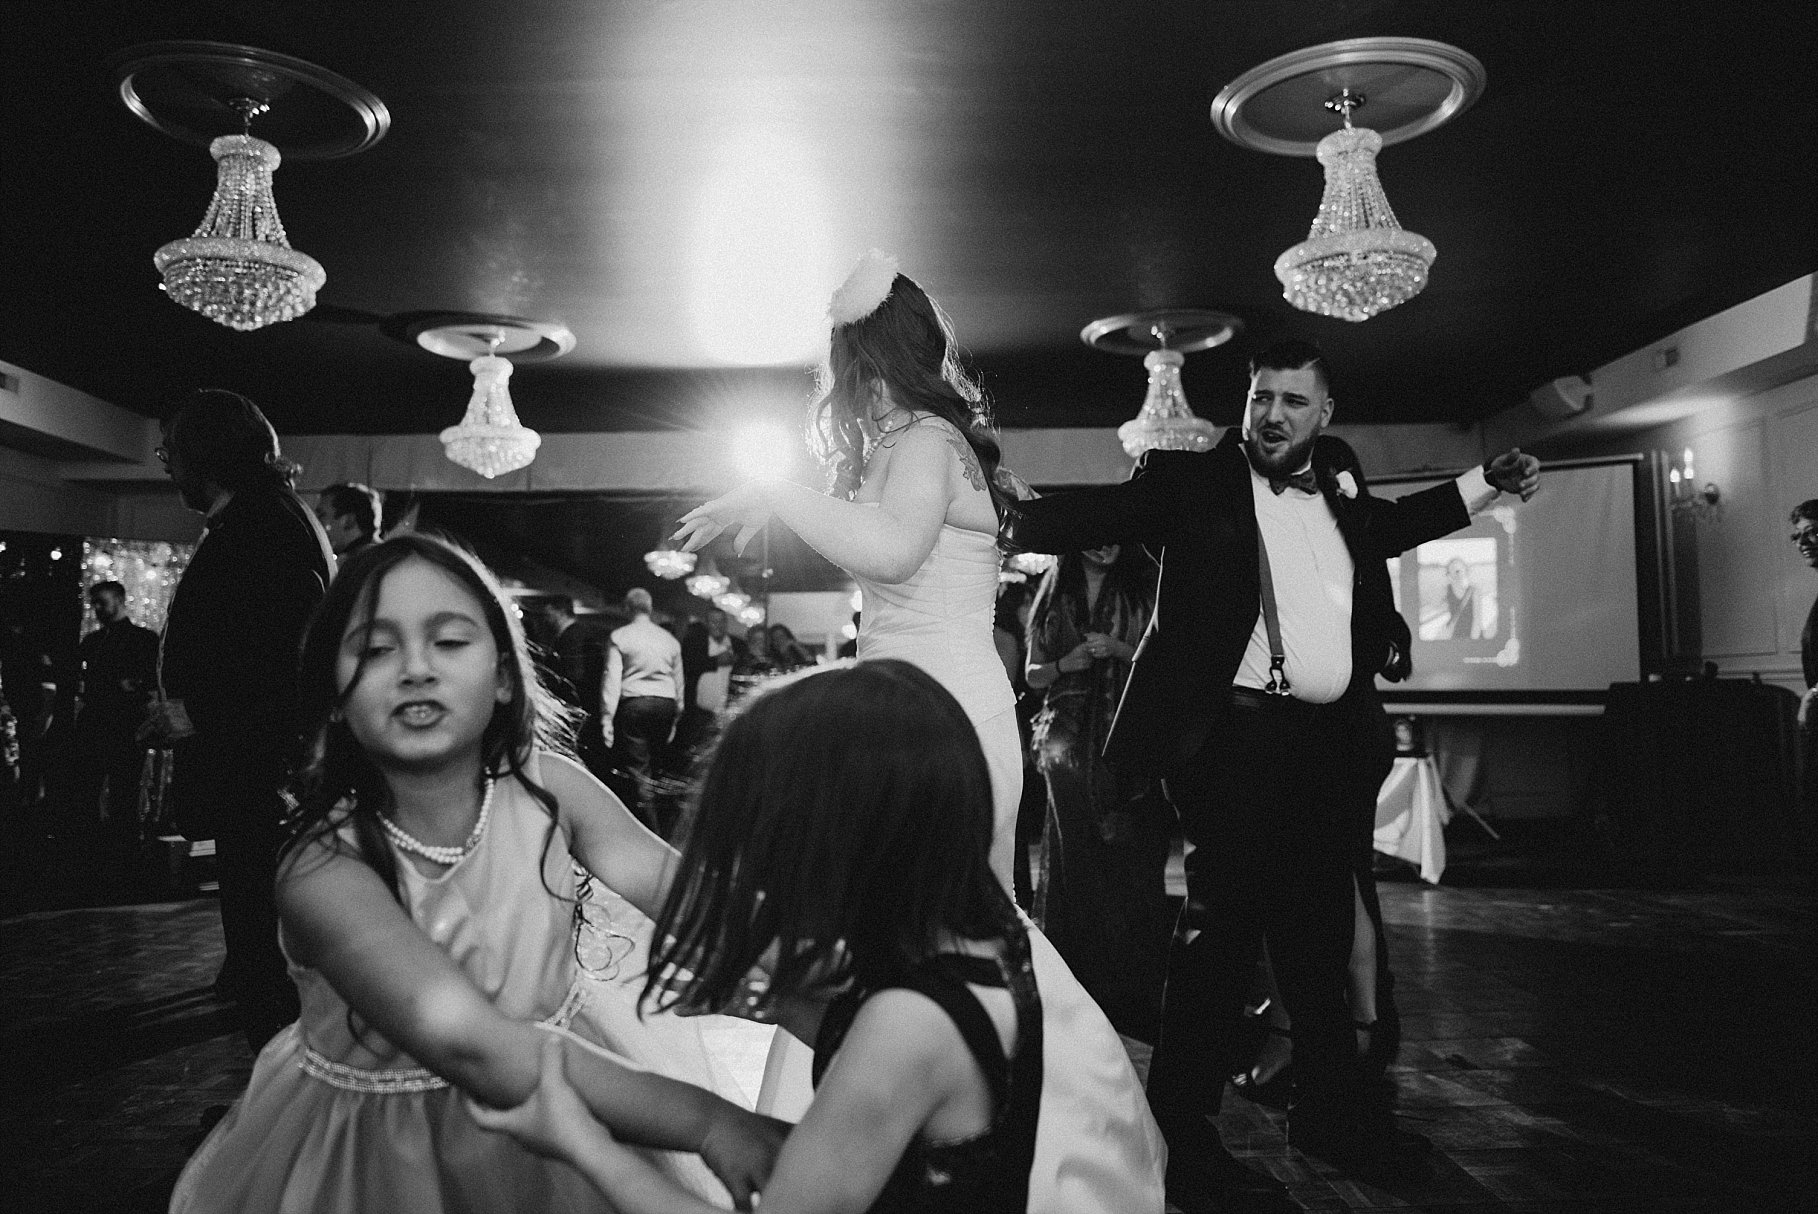 Orchard View Wedding by Mocha Tree Studios Ottawa Wedding and Engagement Photographer and Videographer Dark Moody Intimate Authentic Modern Romantic Cinematic Best Candid 42